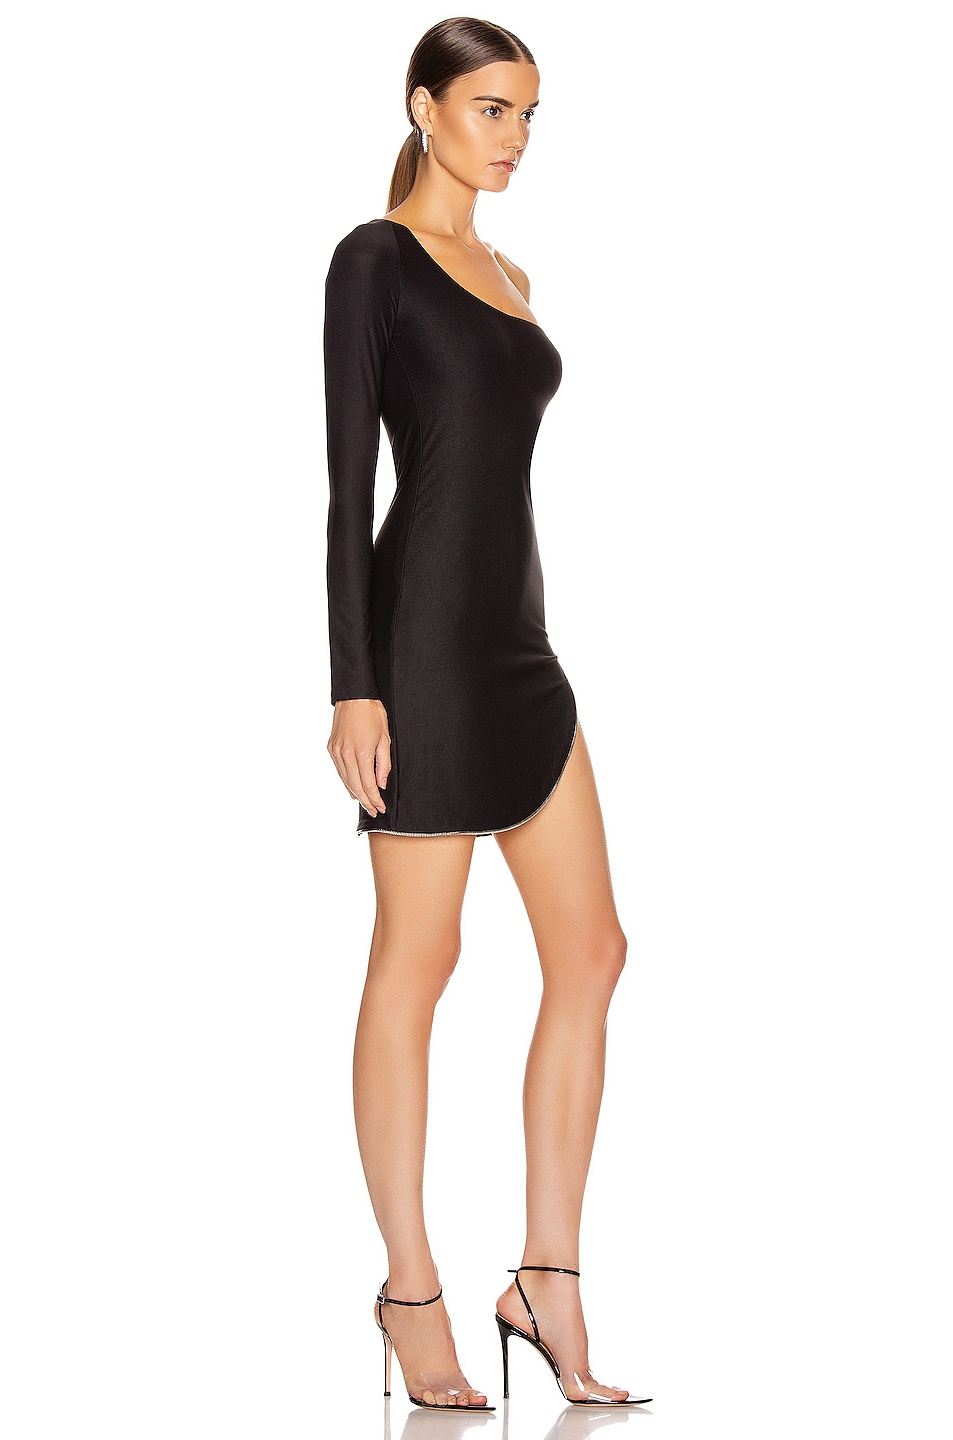 Image 3 of ALIX NYC Ainslie Dress in Black